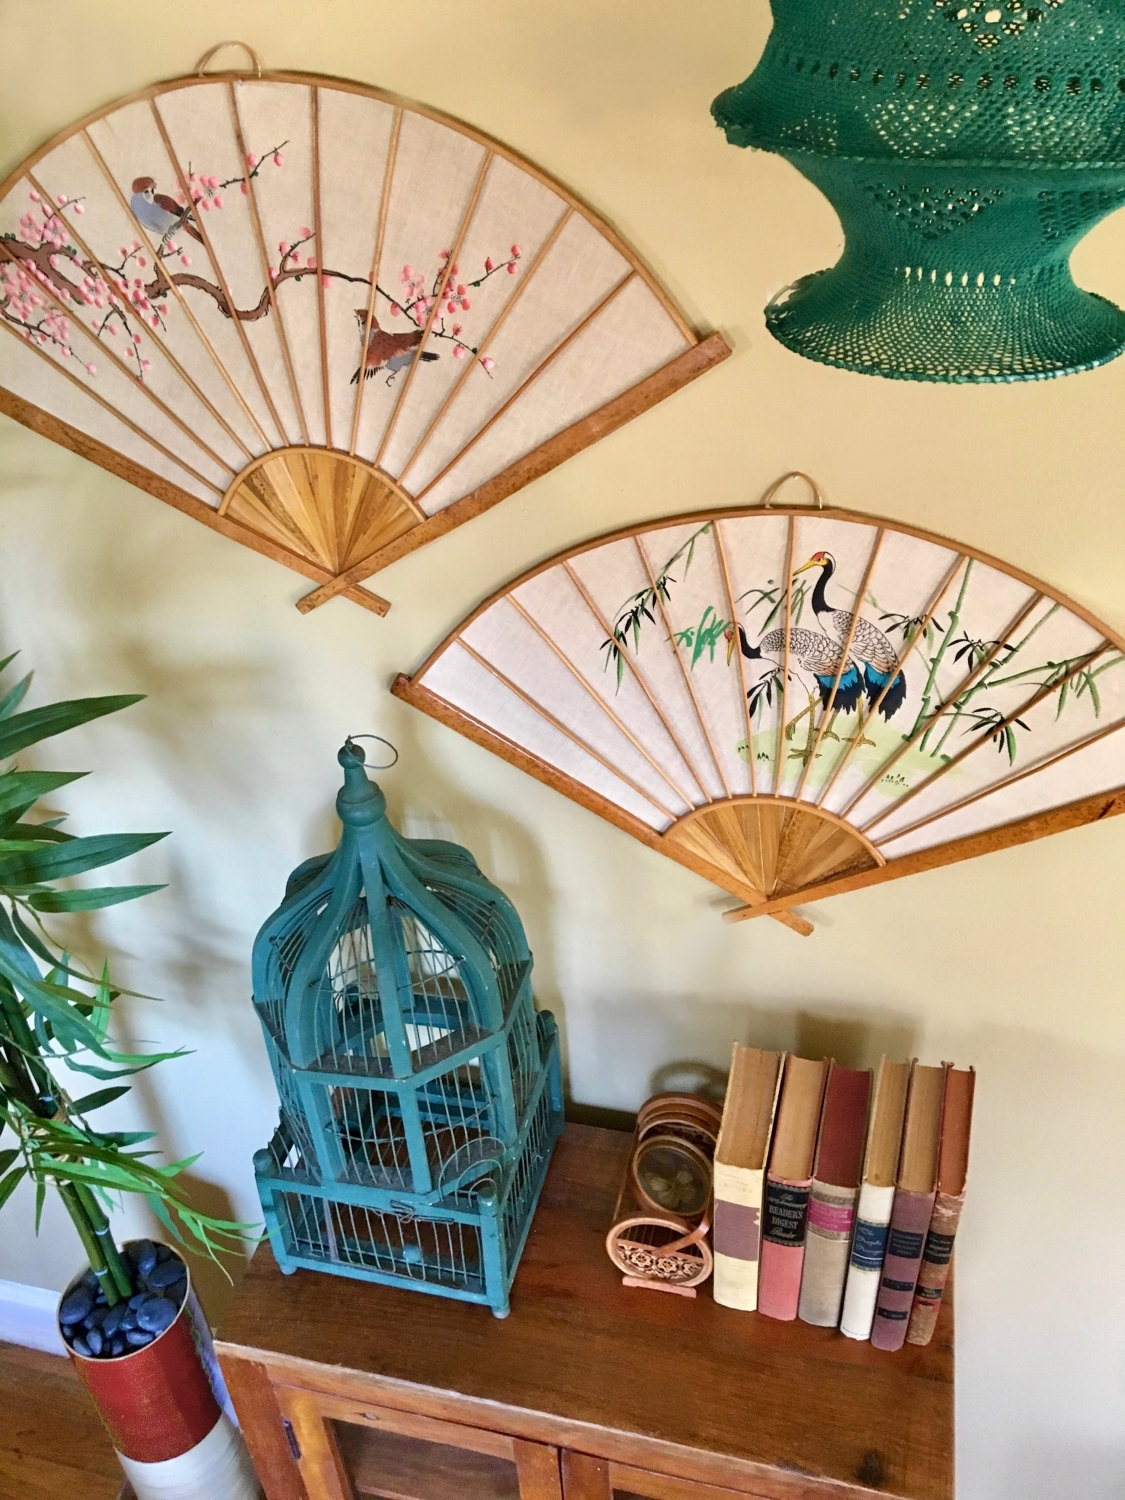 Vintage Asian Handpainted Fans Wall Hanging Set / Wall Decor With Inside Most Current Asian Fabric Wall Art (Gallery 11 of 15)